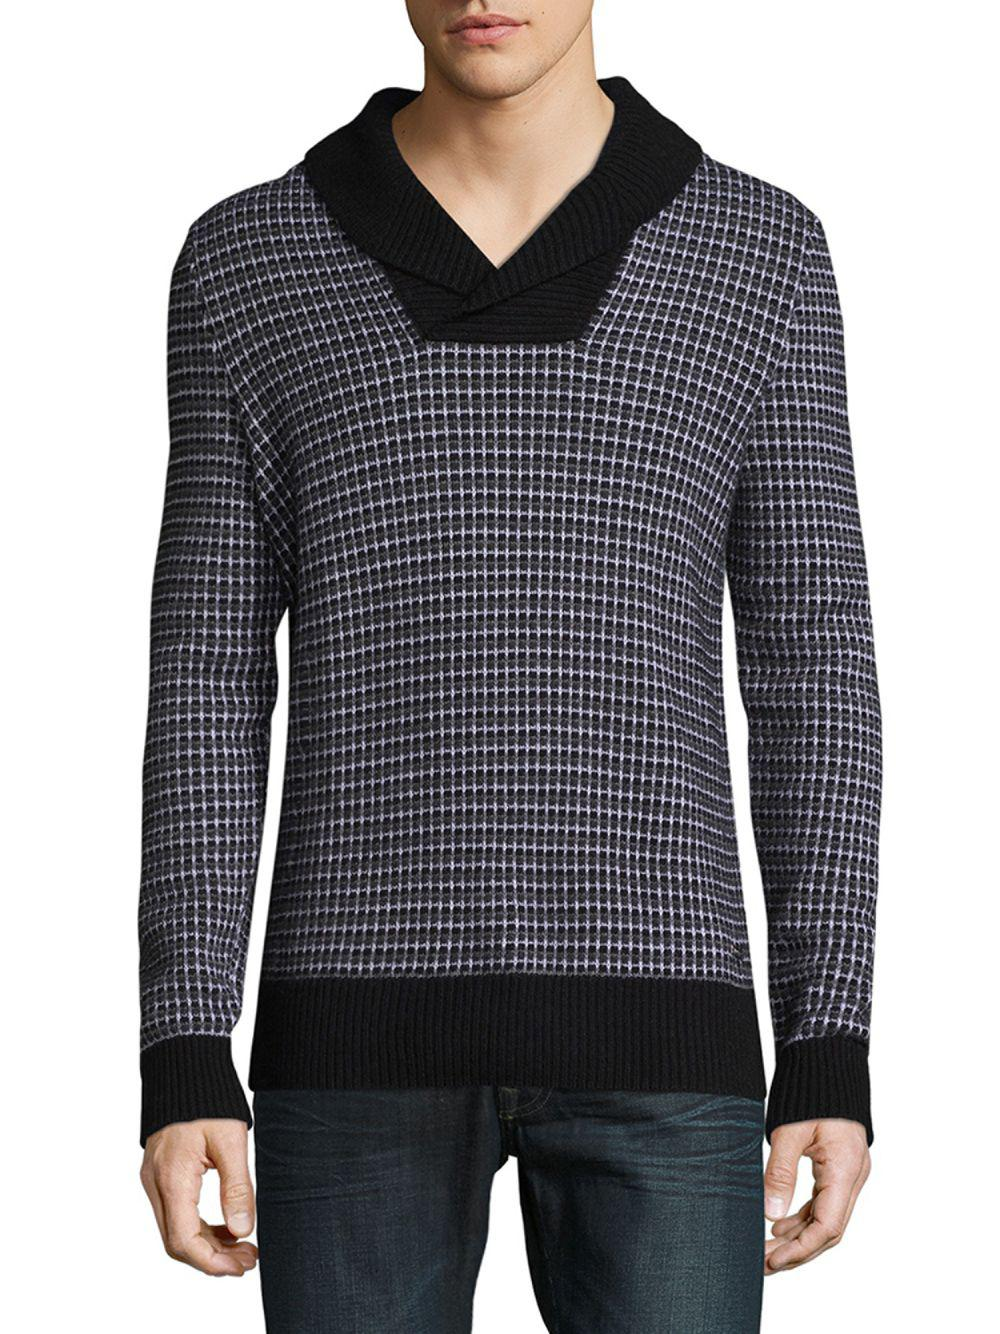 f9ad2ccb8 Lyst - BOSS Checkered Wool Sweater in Black for Men